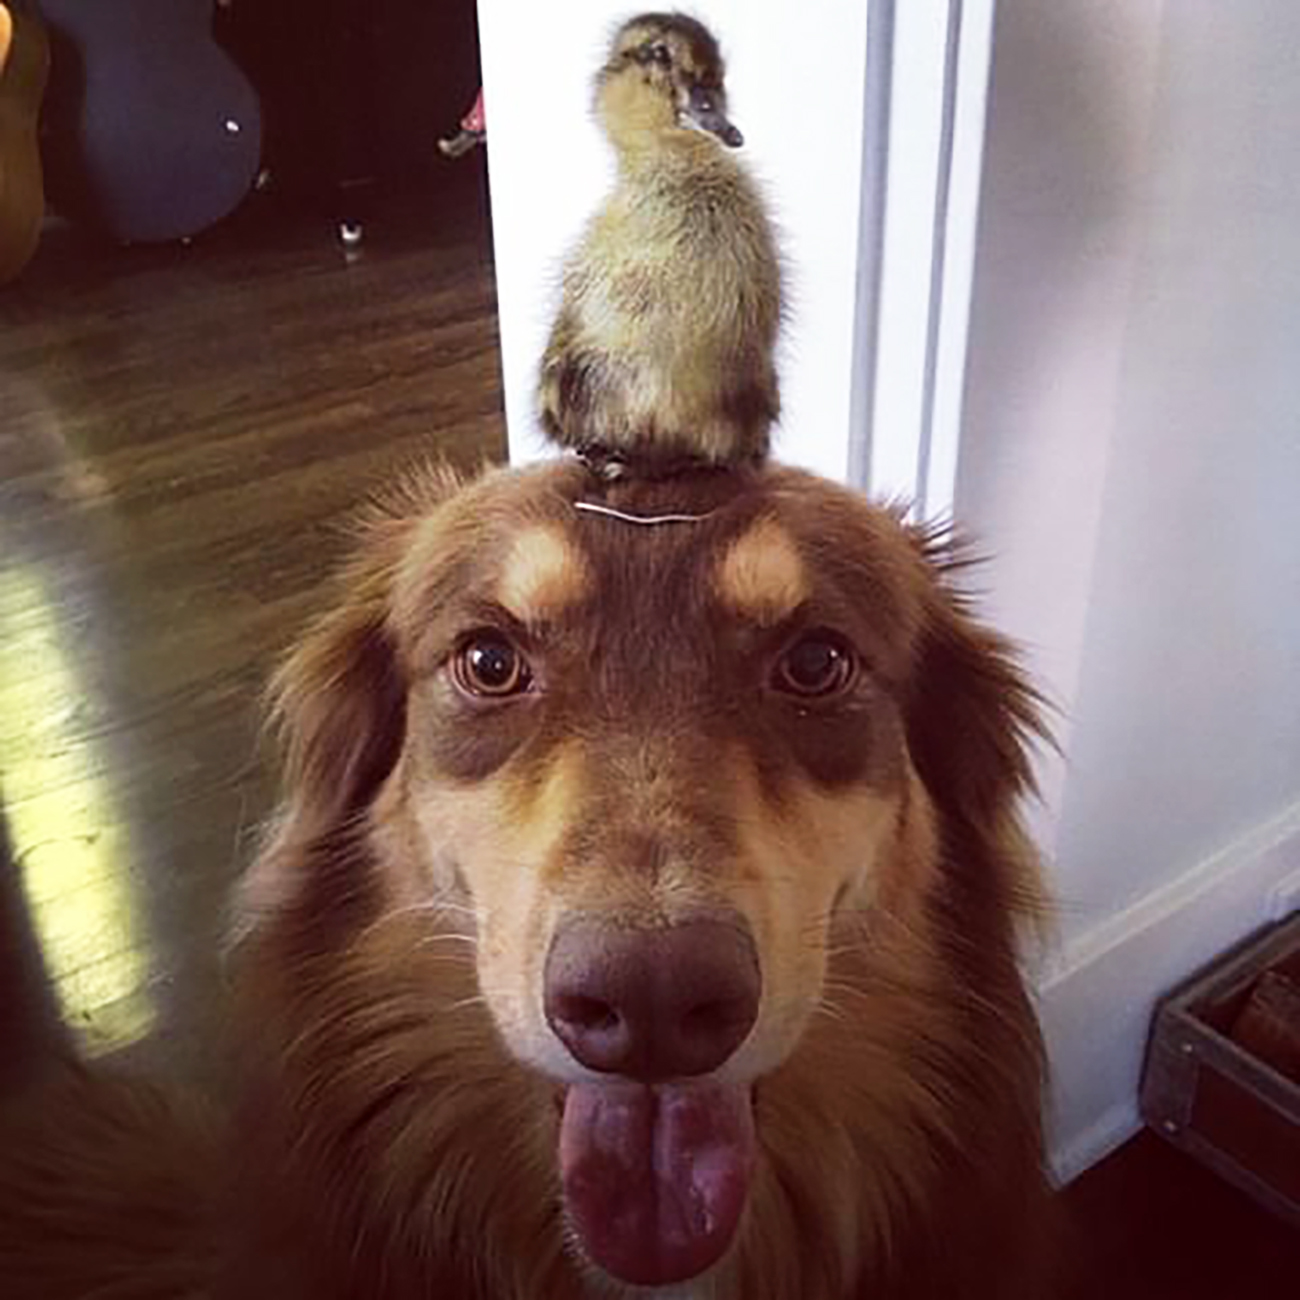 Photo of Amanda Seyfried's dog with a duckling on their head